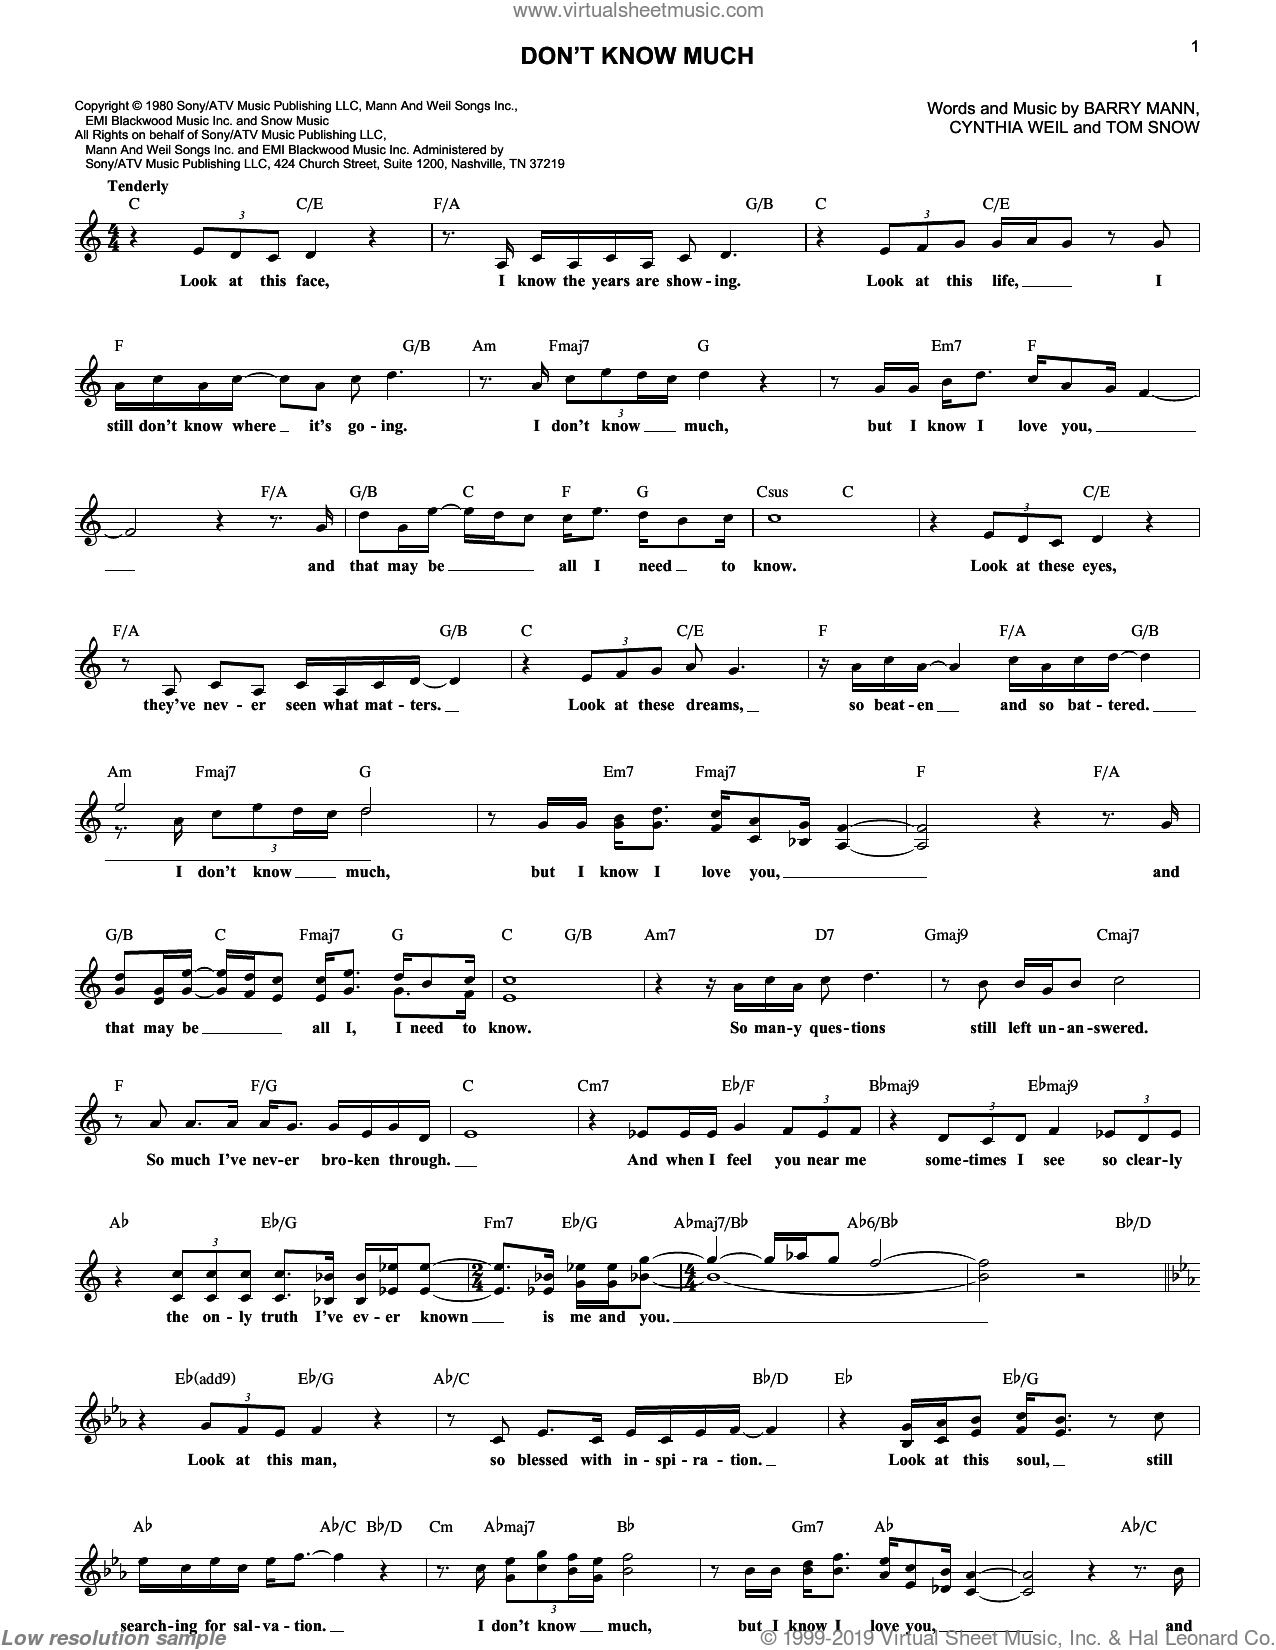 Don't Know Much sheet music for voice and other instruments (fake book) by Aaron Neville and Linda Ronstadt, Linda Ronstadt and Aaron Neville, Barry Mann, Cynthia Weil and Tom Snow, wedding score, intermediate skill level